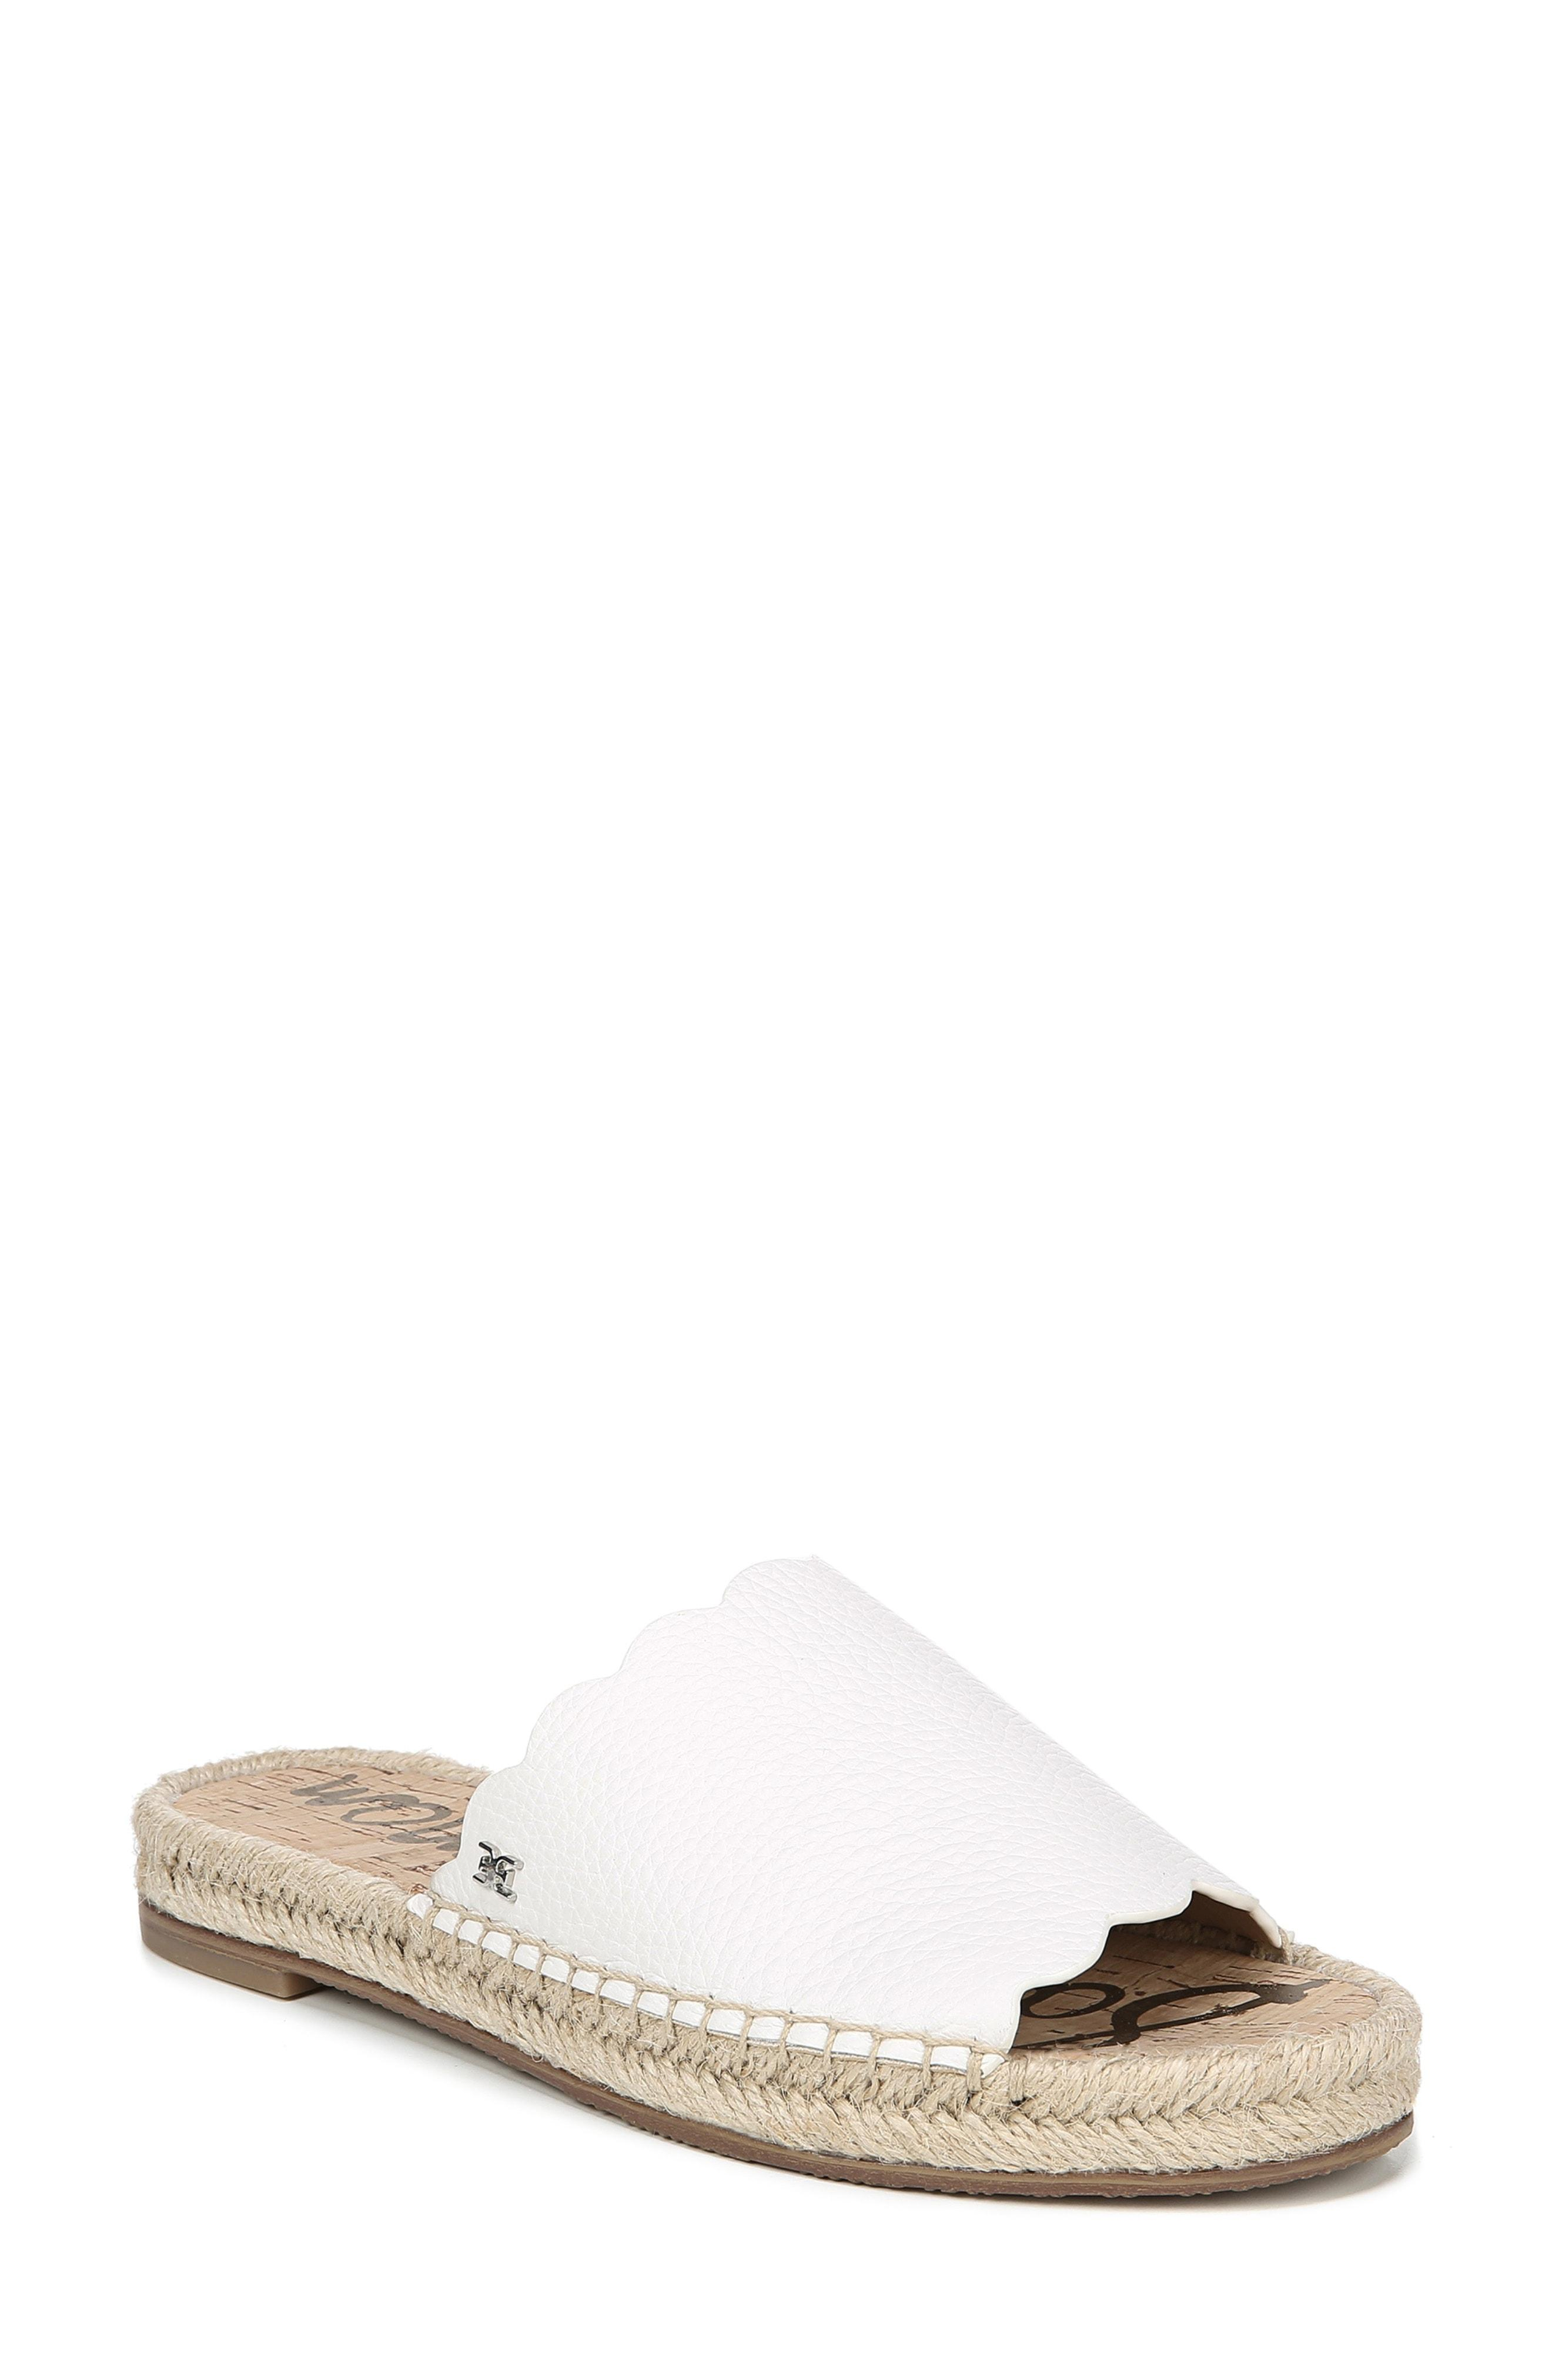 aae507443e2 Lyst - Sam Edelman Andy Slide Sandal in White